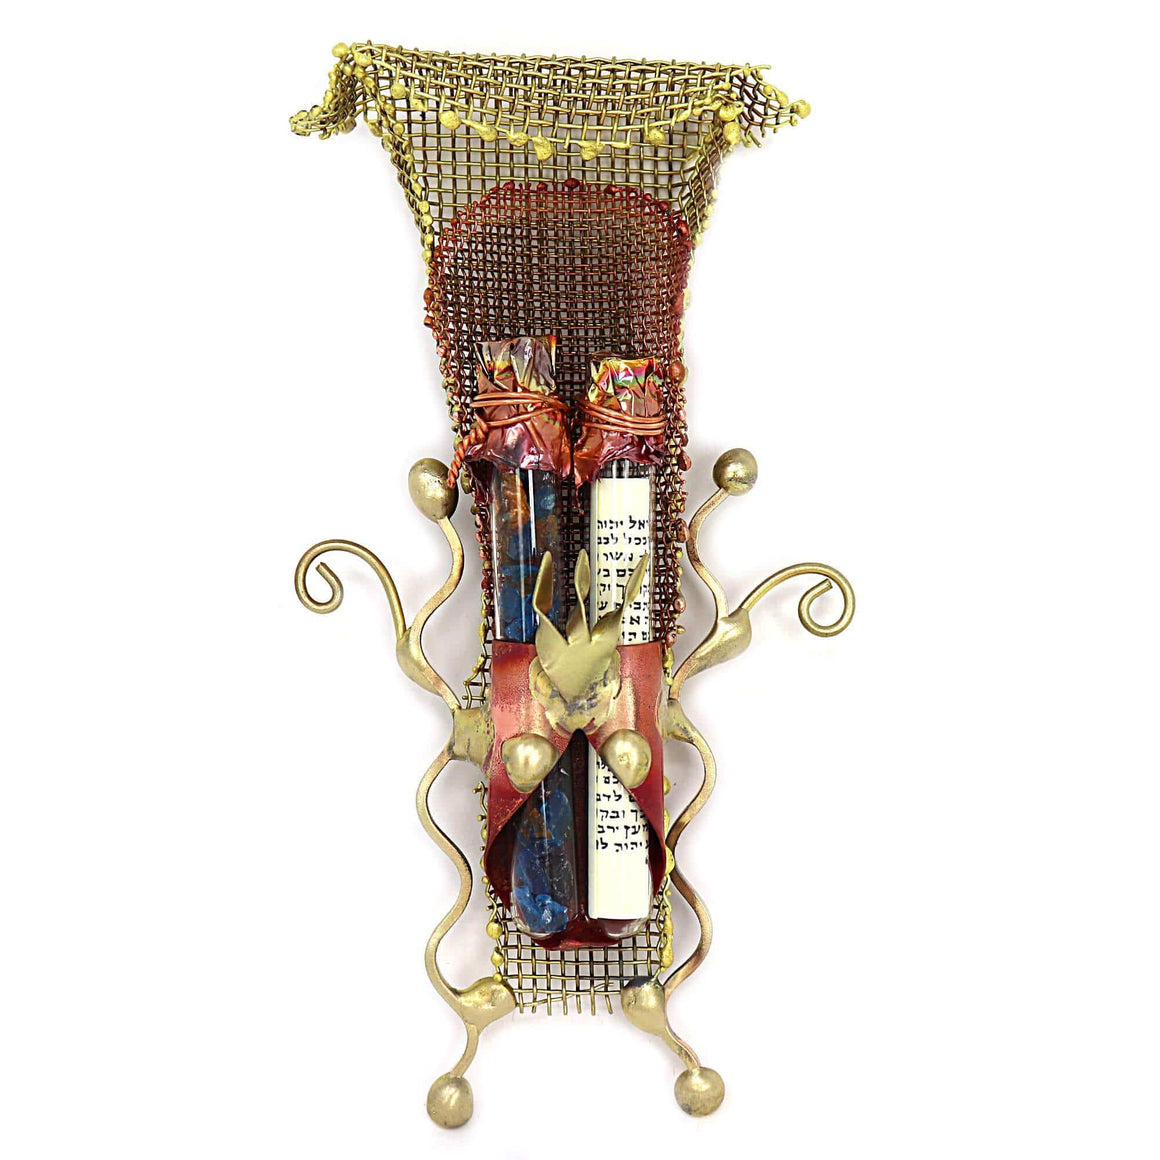 Under The Huppah Wedding Glass Keepsake Mezuzah Case & Stand By Gary Rosenthal, Keepsakes In Multi-Colored,gold Size: 2.5 W X 6 H Wedding Glass Keepsakes